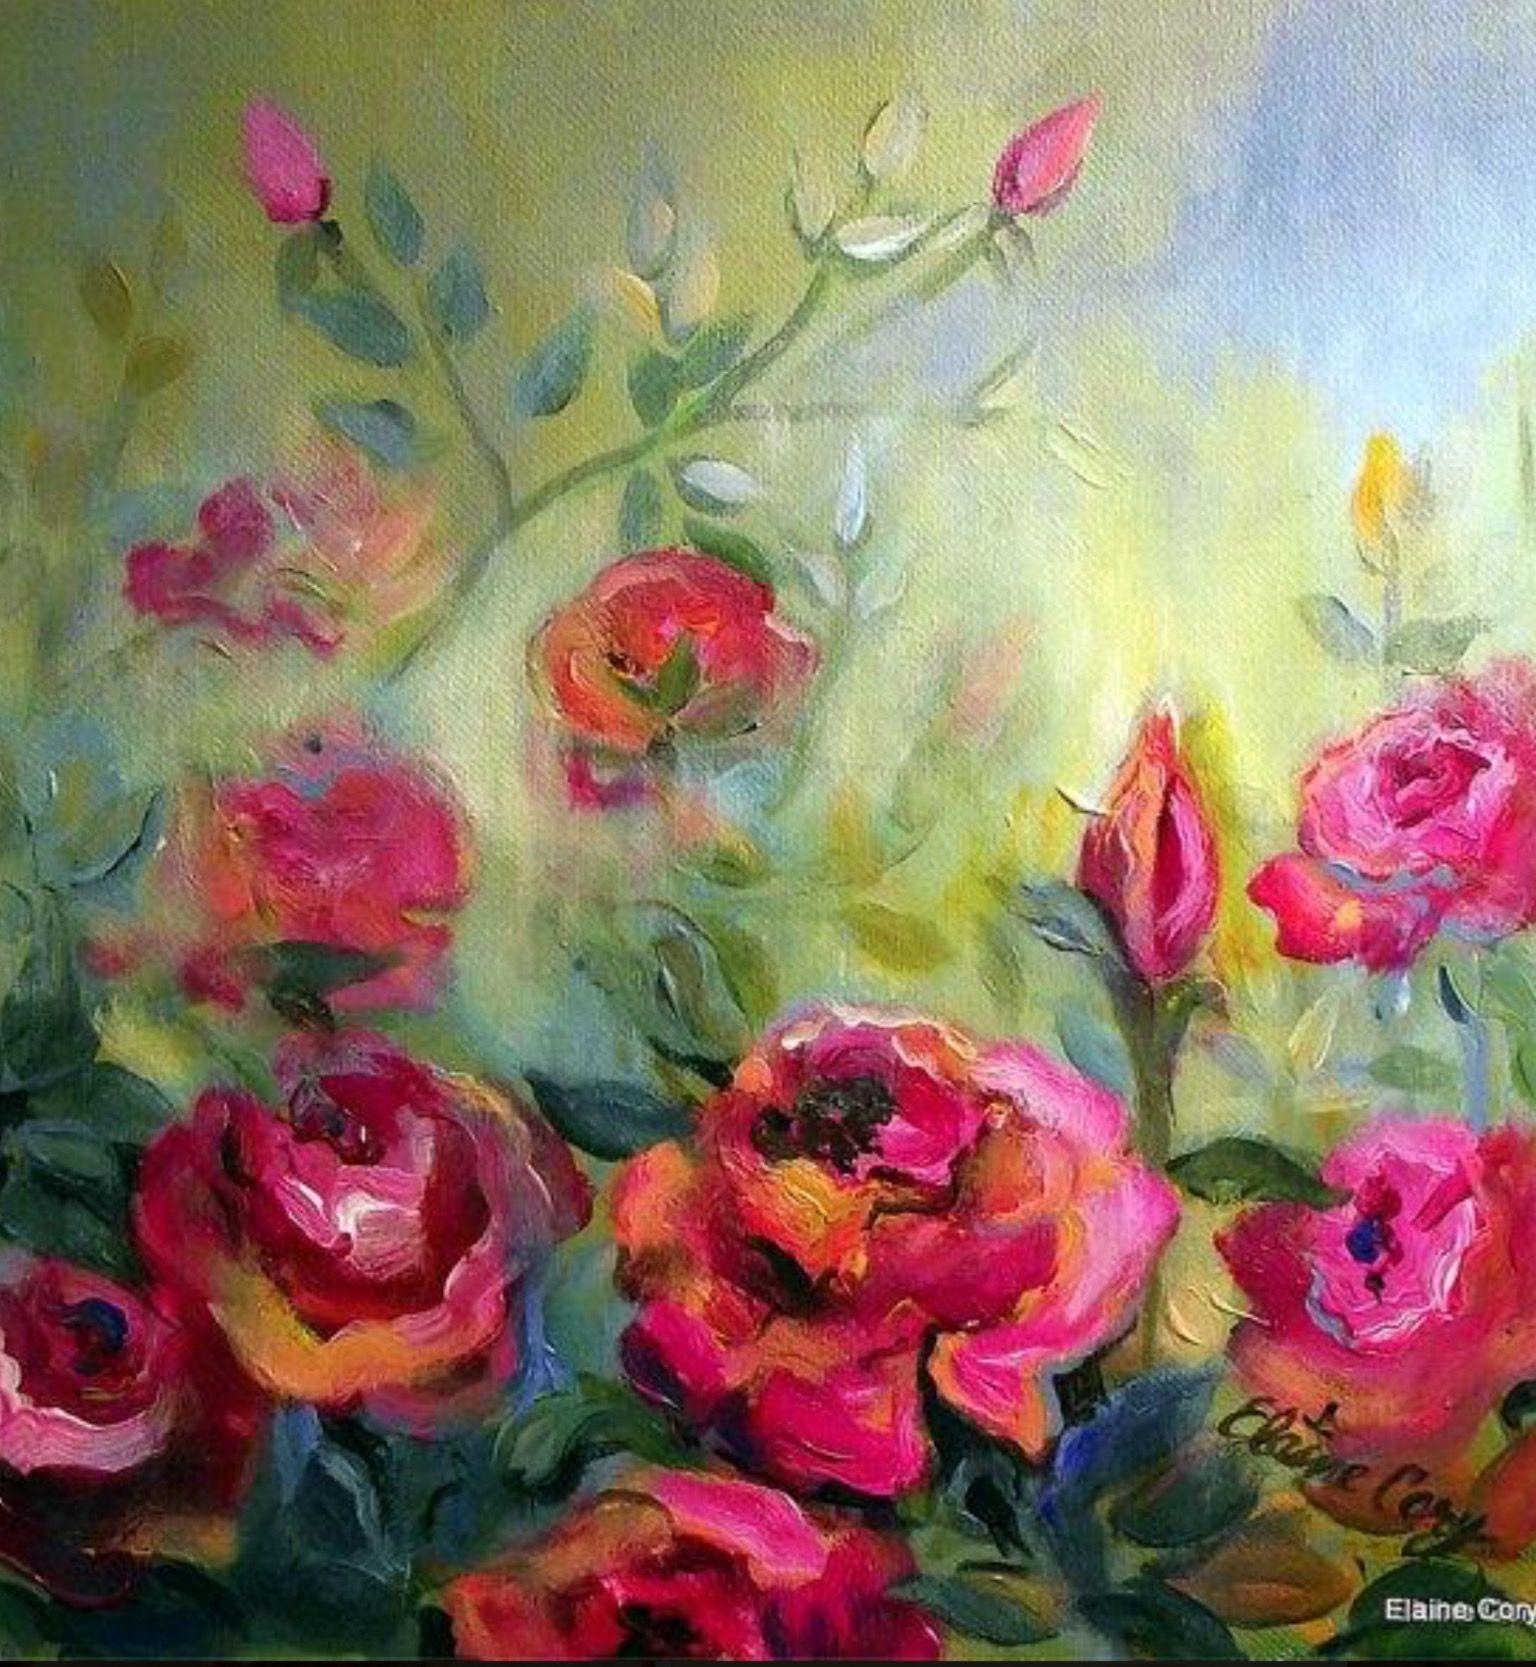 Pin by Lucille Nuanes on Art-Flowers | Pinterest | Art flowers ...